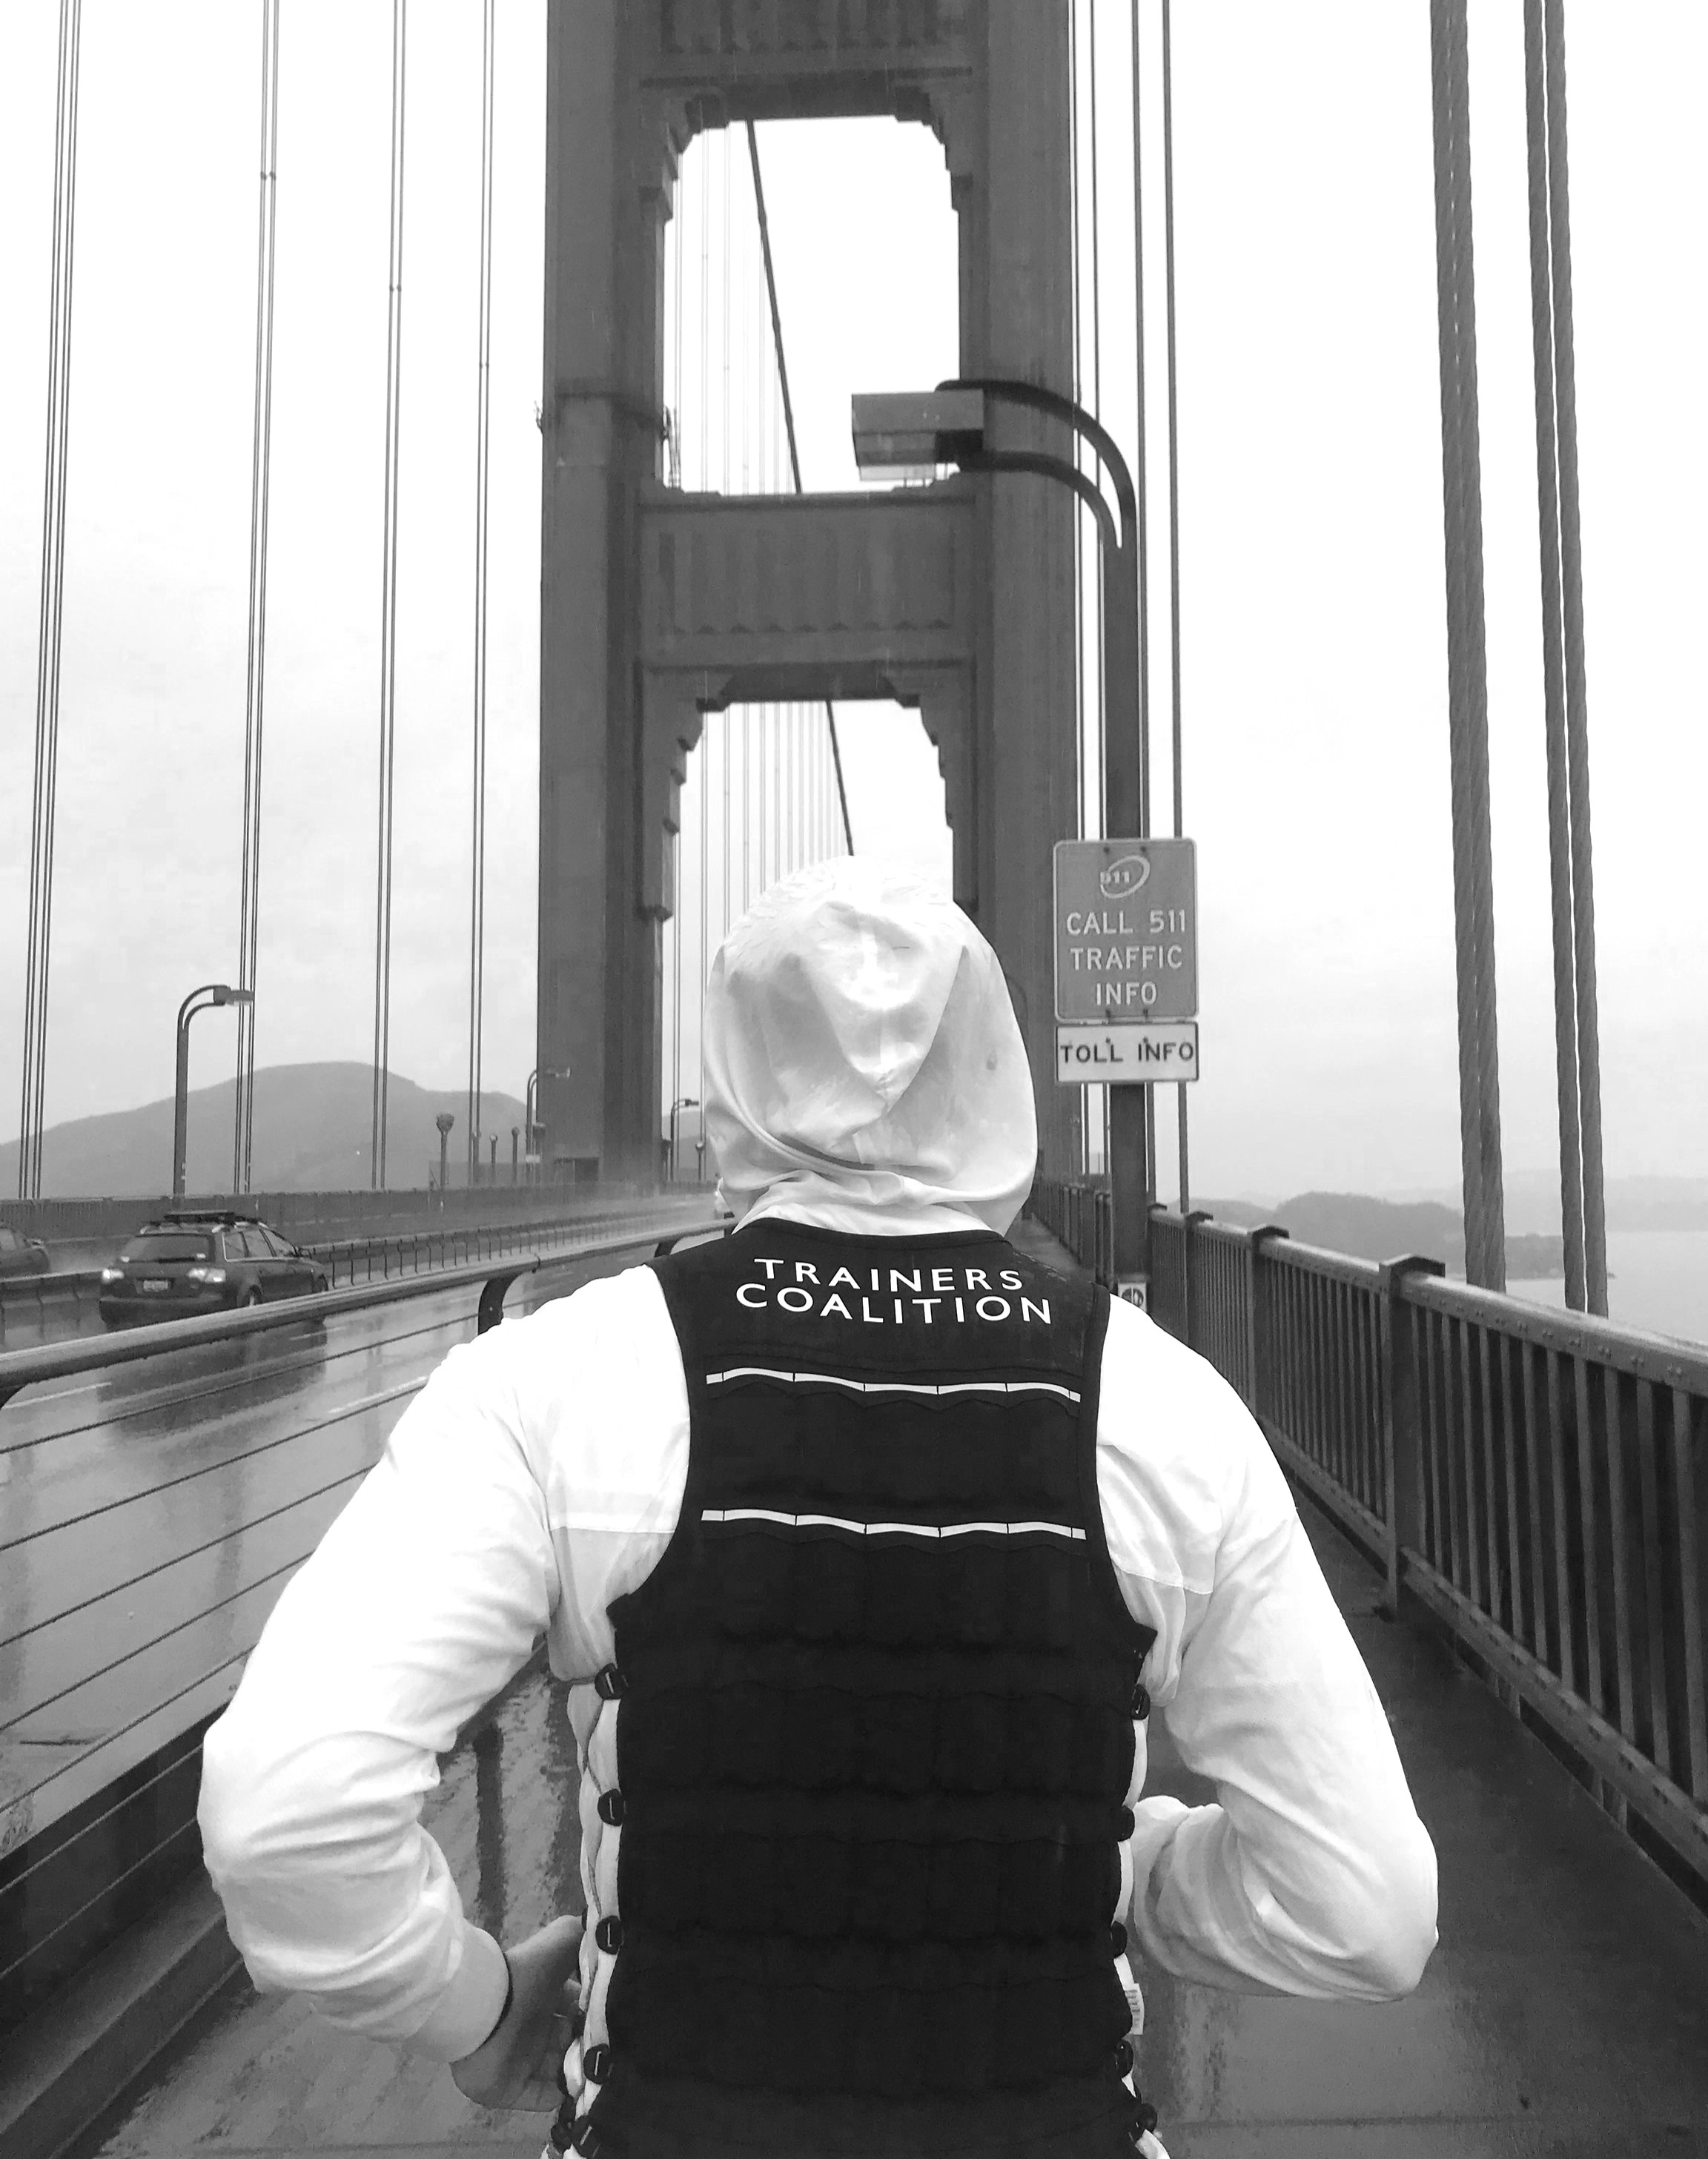 RUN 202020 - Our founder, Alan Li, is training to run 20 marathons in 20 days in a 20 lb weighted vest in April 2019.Learn more about his record-breaking journey and how you can support!